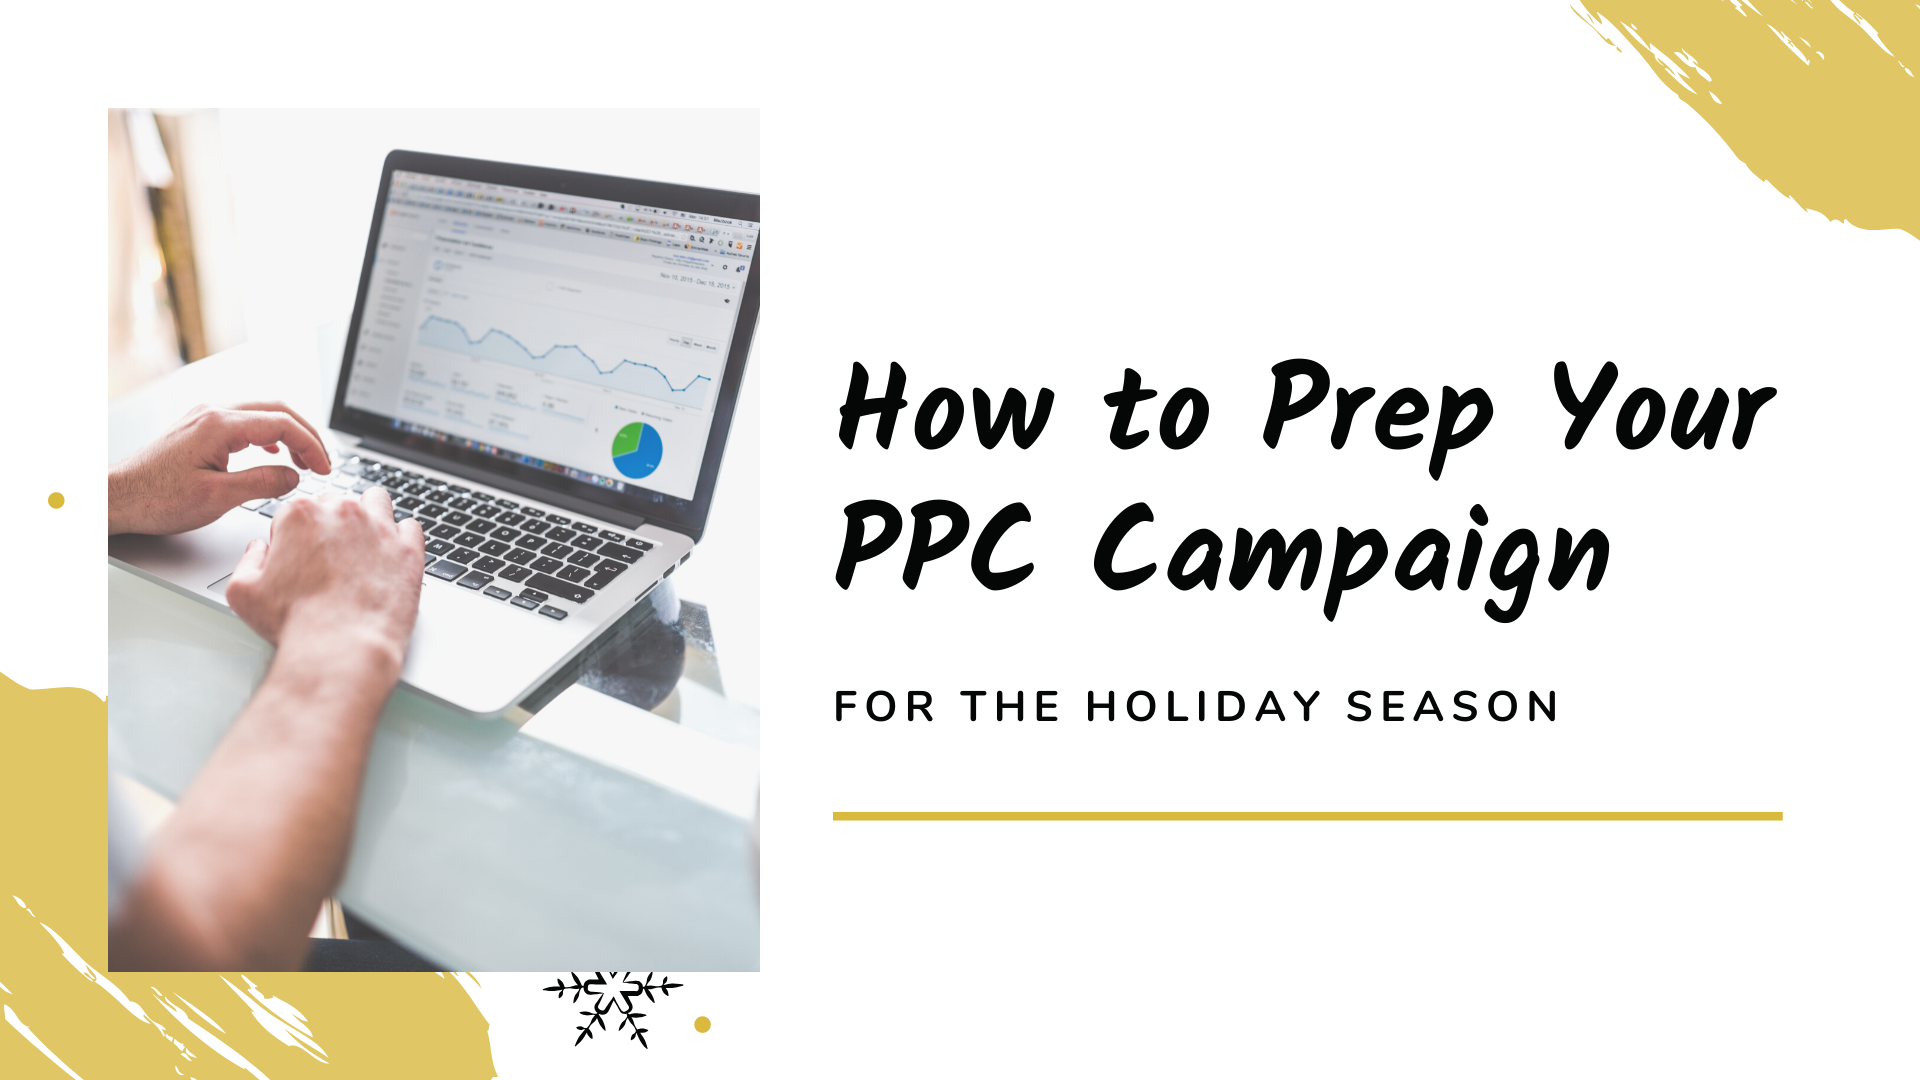 How to Prep Your PPC Campaign for the Holiday Season